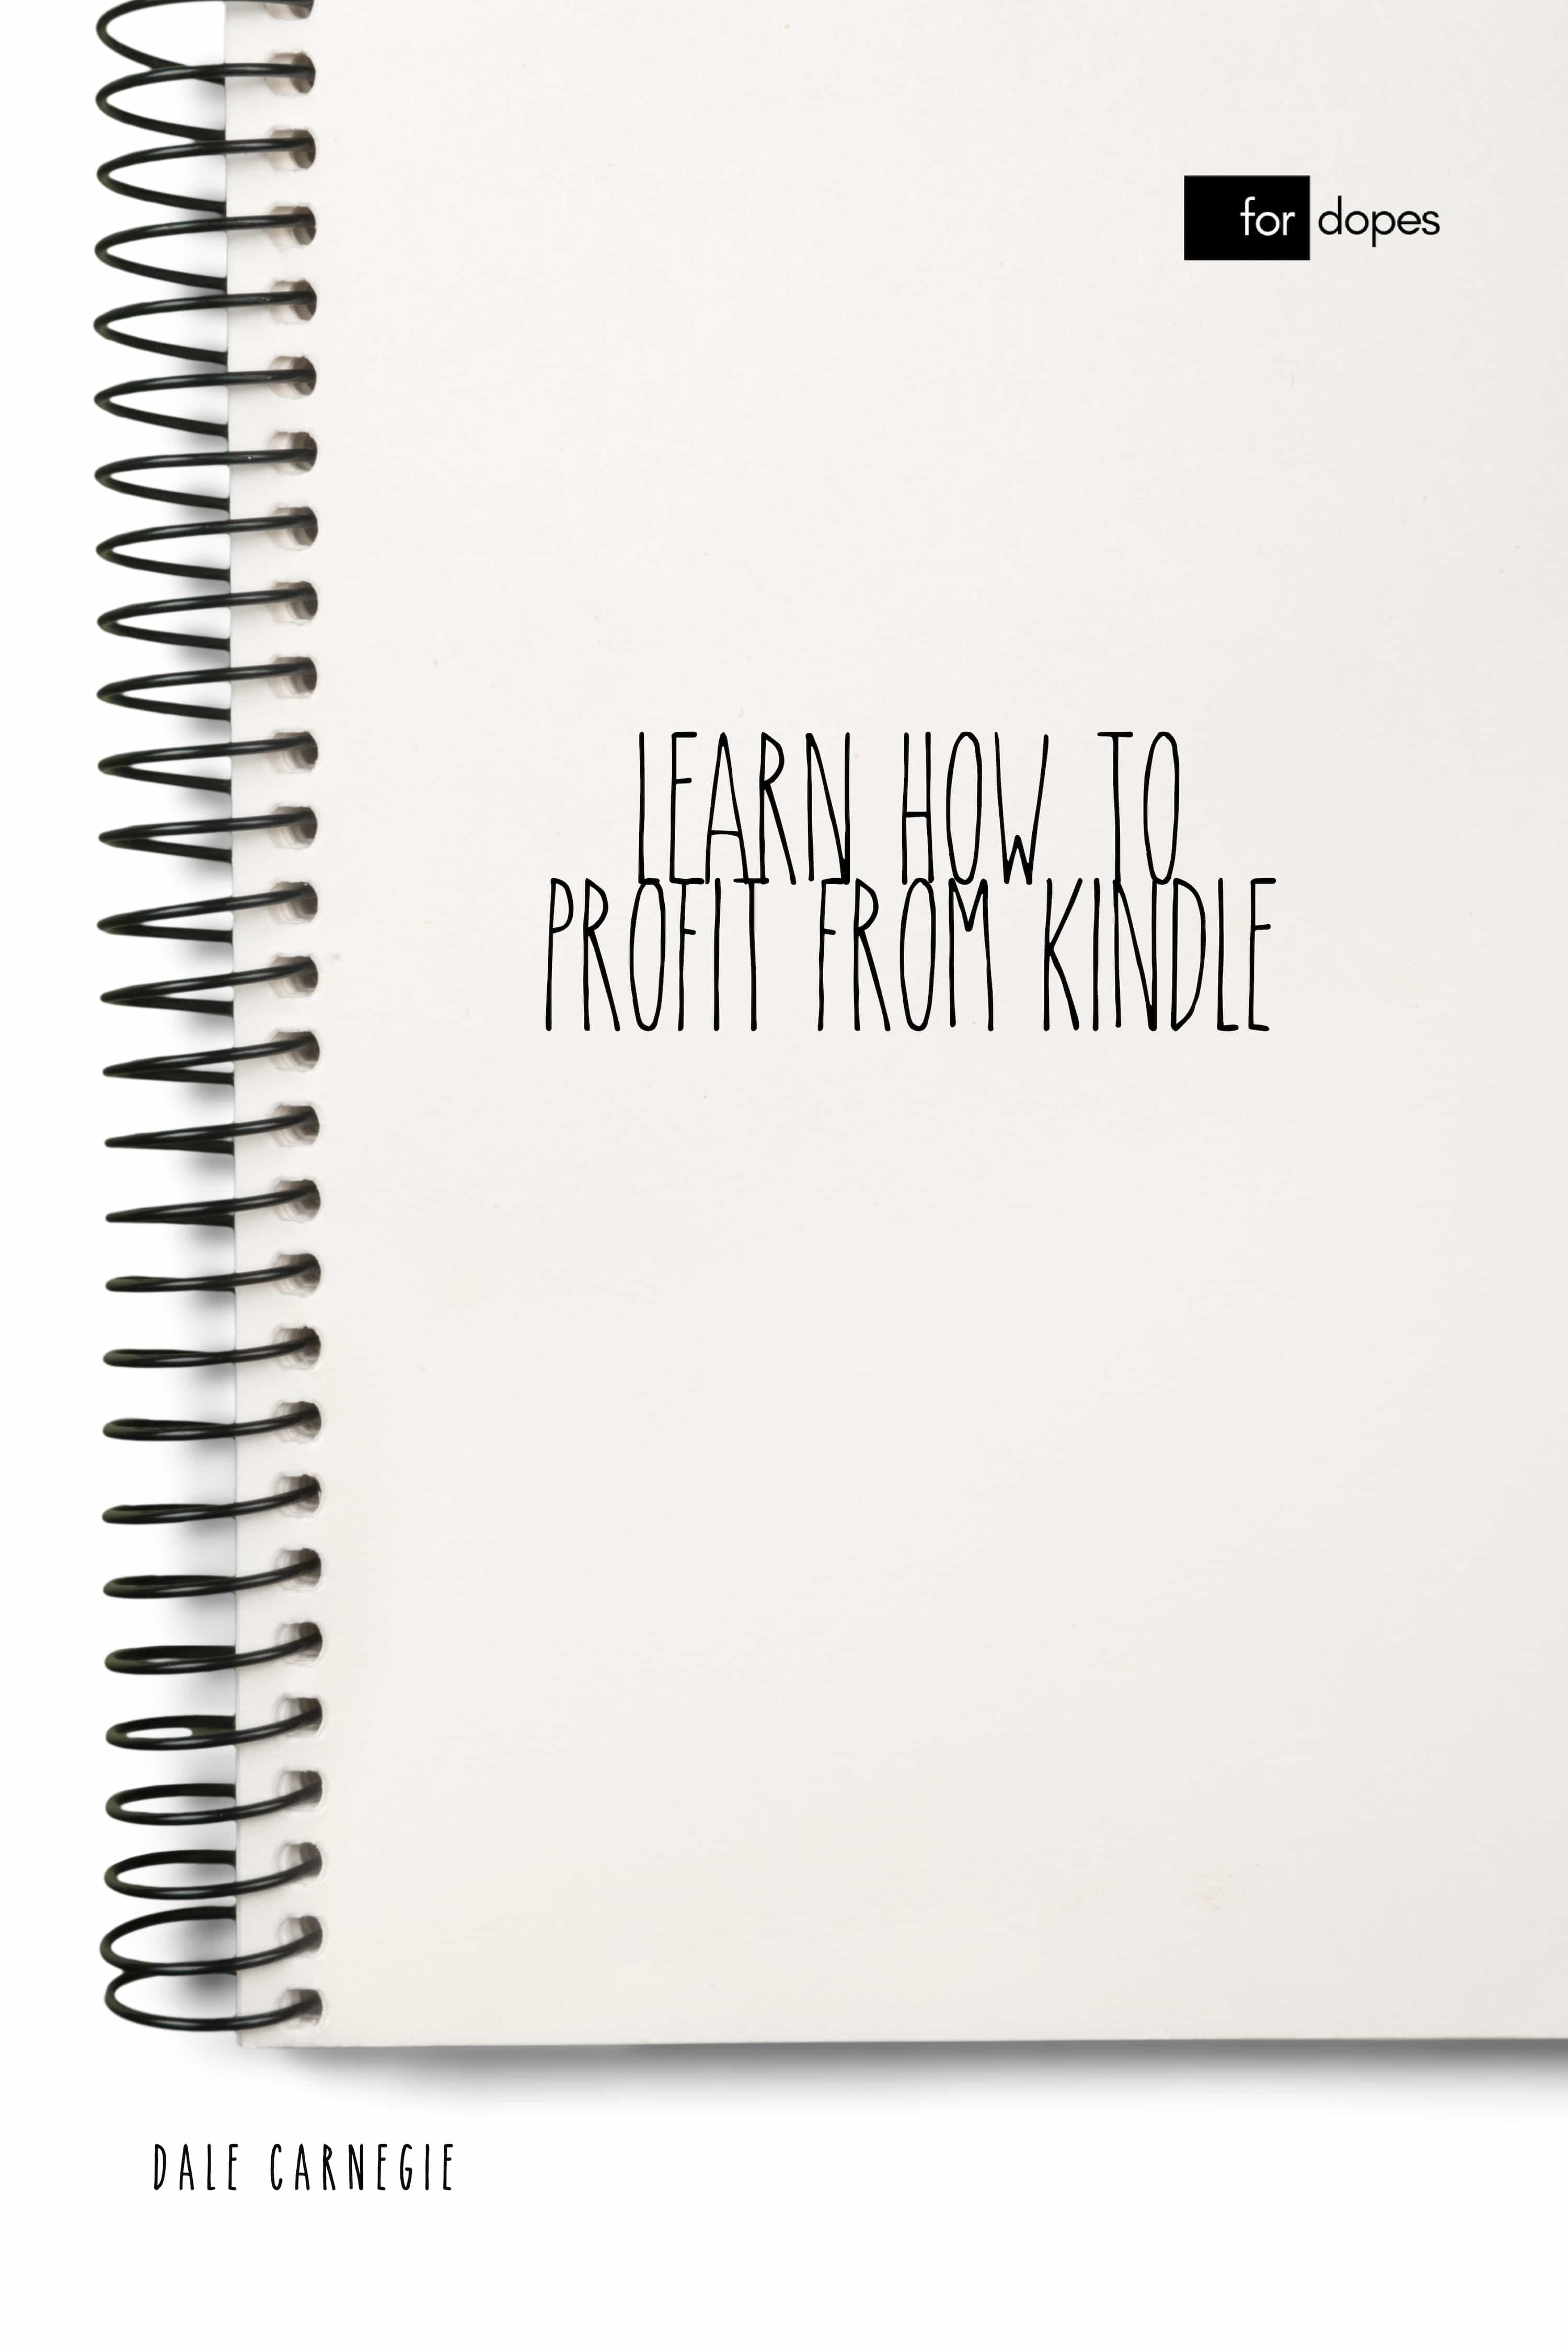 LEARN HOW TO PROFIT FROM KINDLE